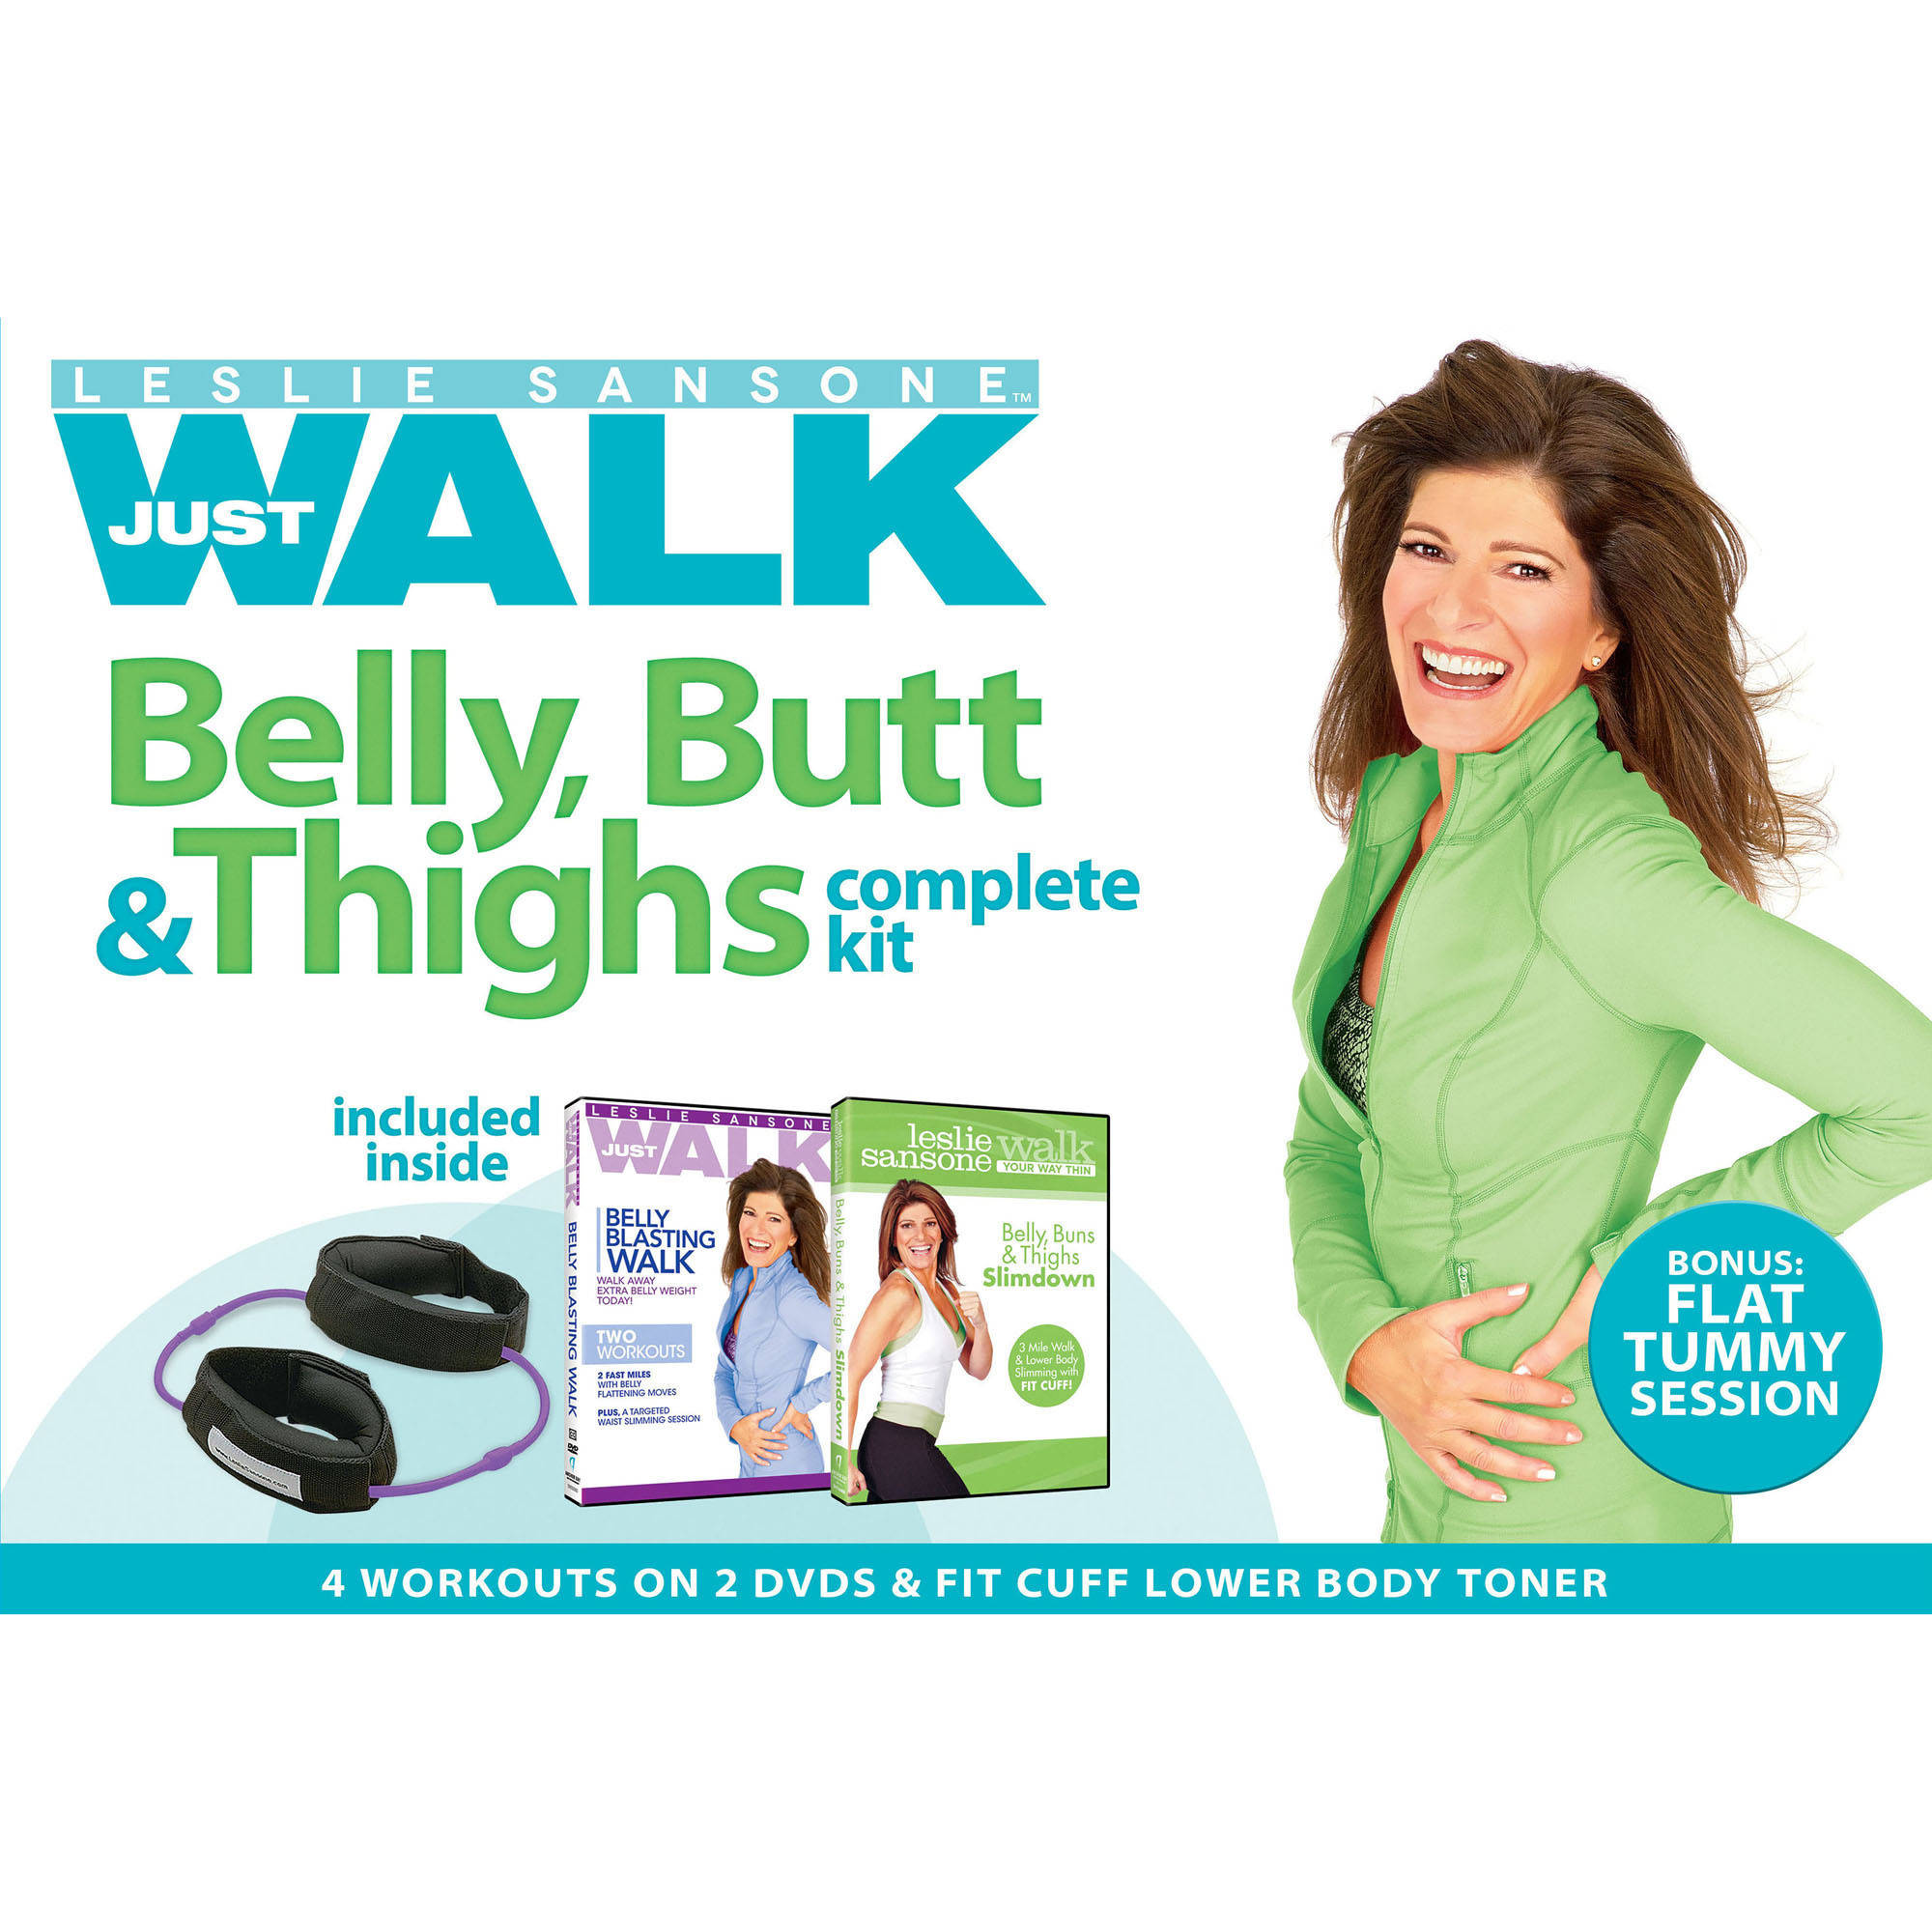 Leslie Sansone: Belly Butt and Thigh Kit